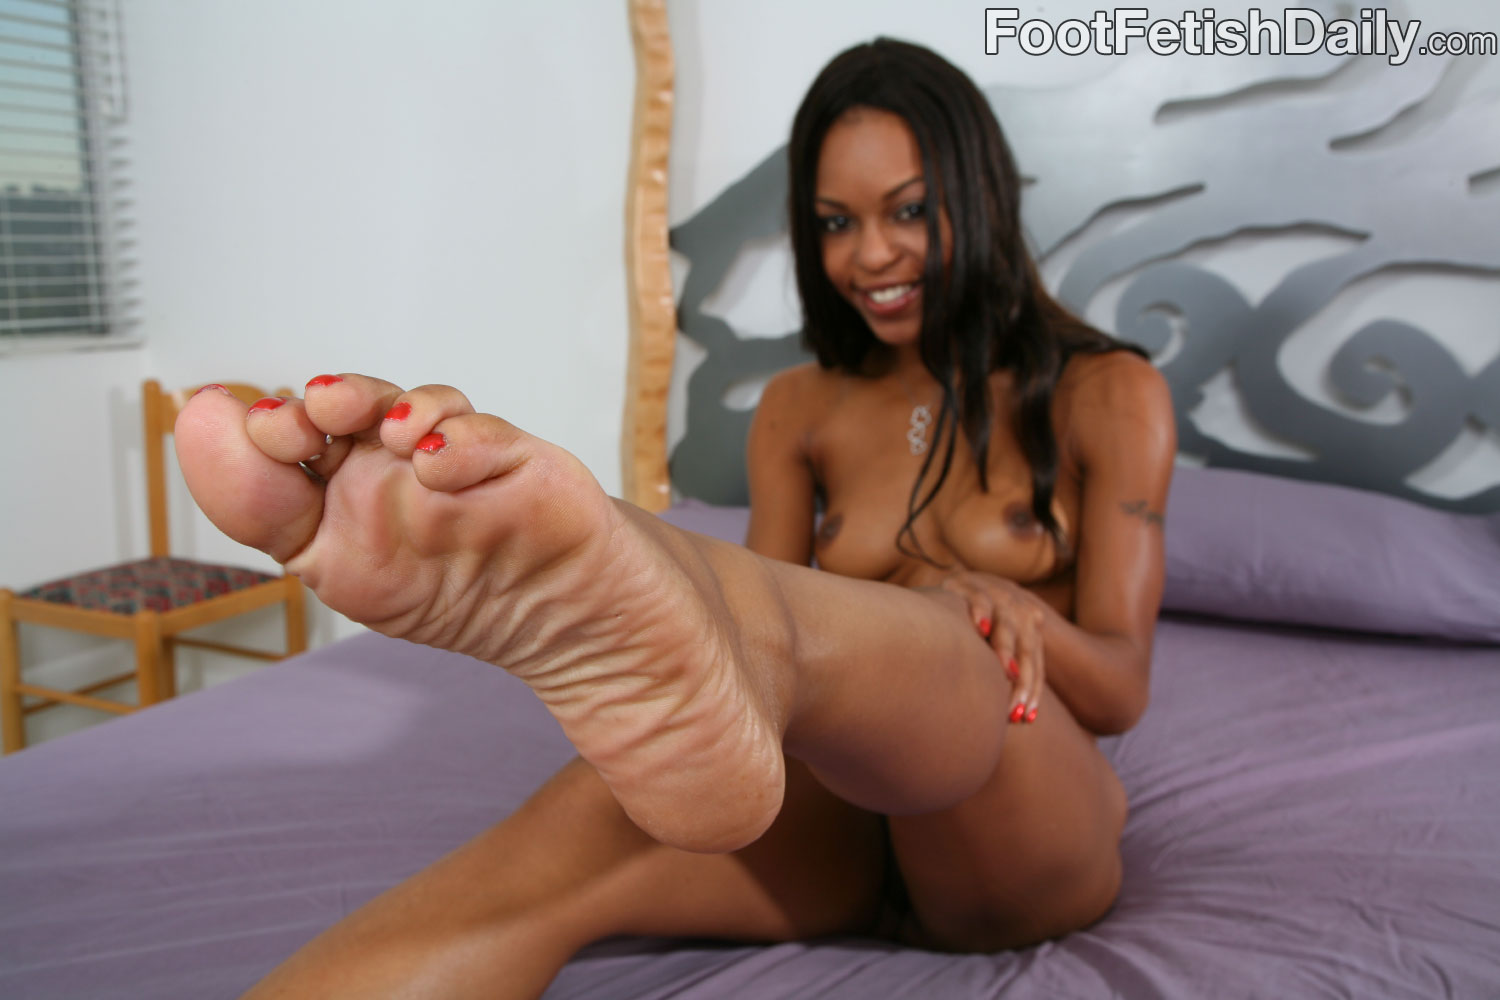 Foot fetish free porn black woman necessary phrase